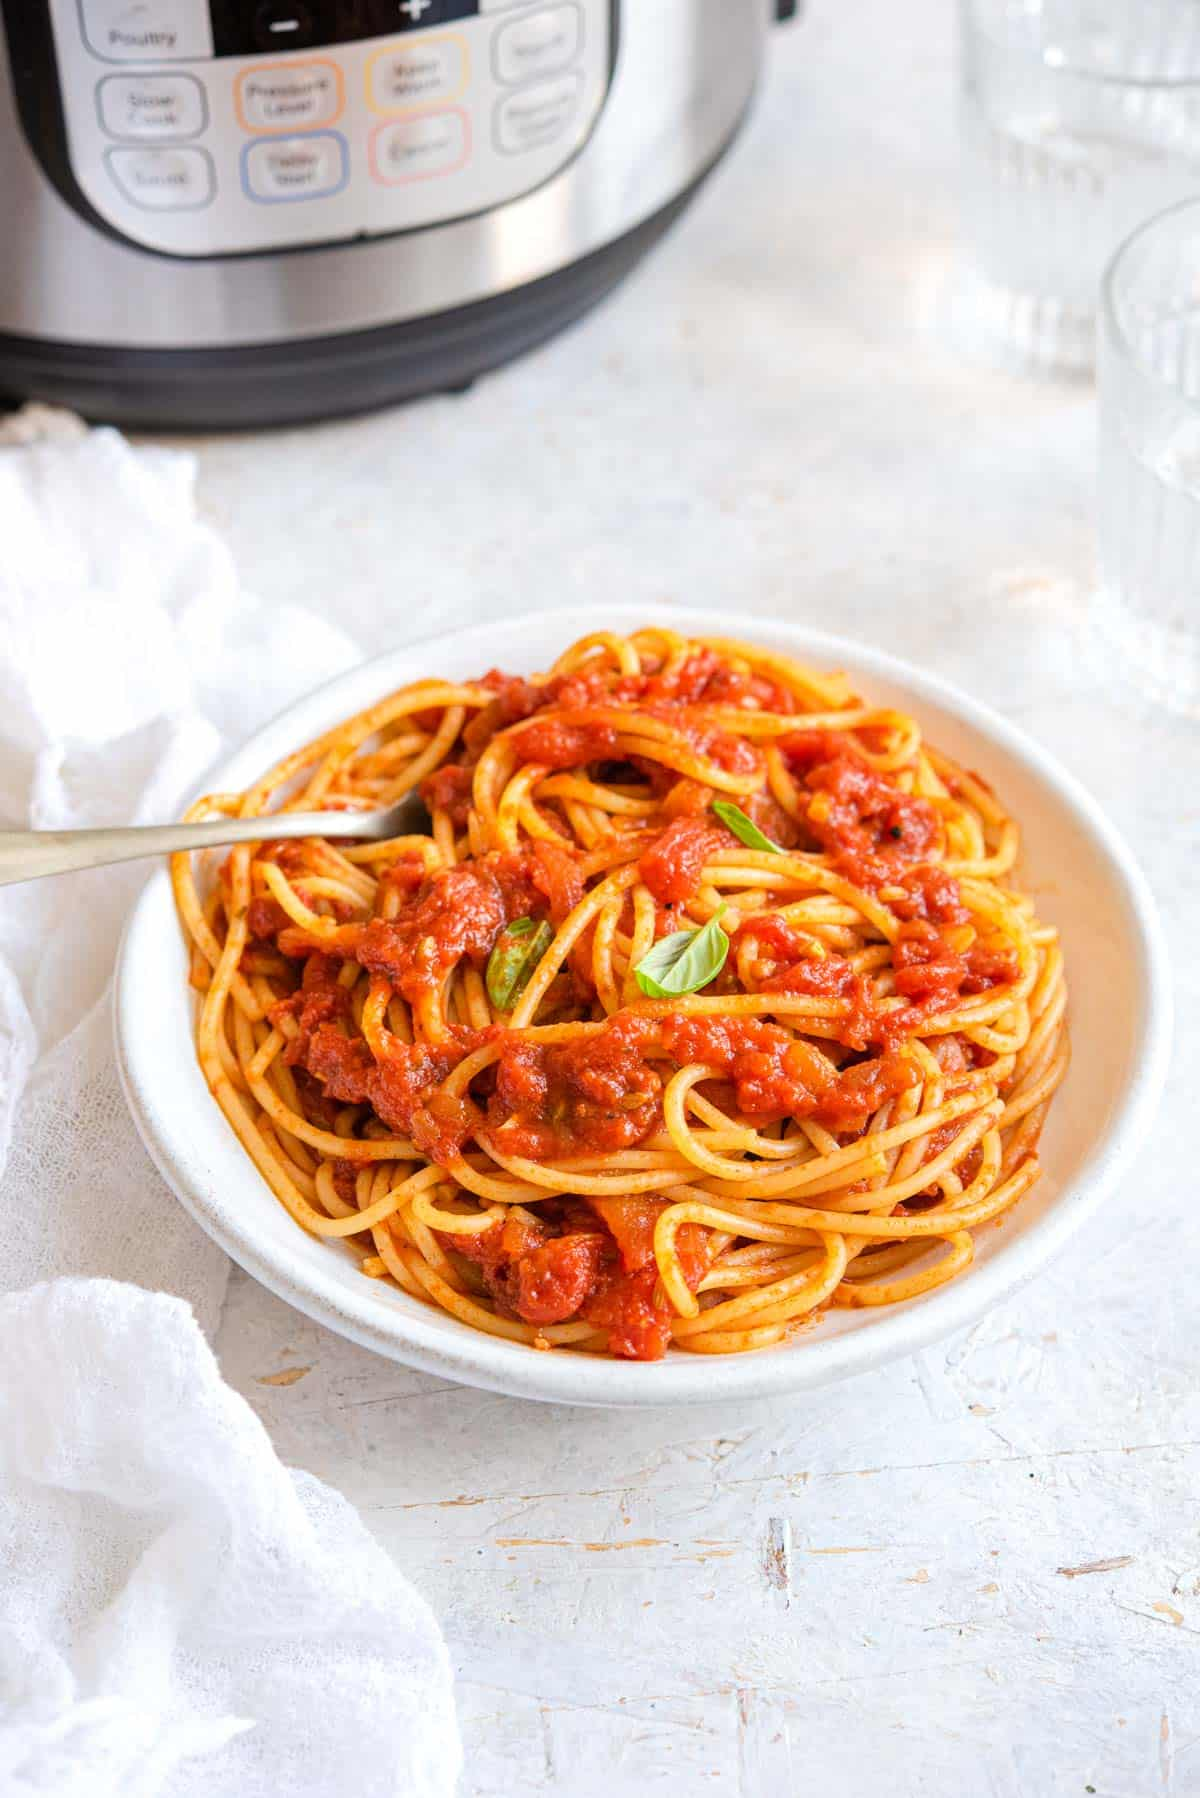 Spaghetti with tomato sauce in a bowl with an Instant Pot in the background